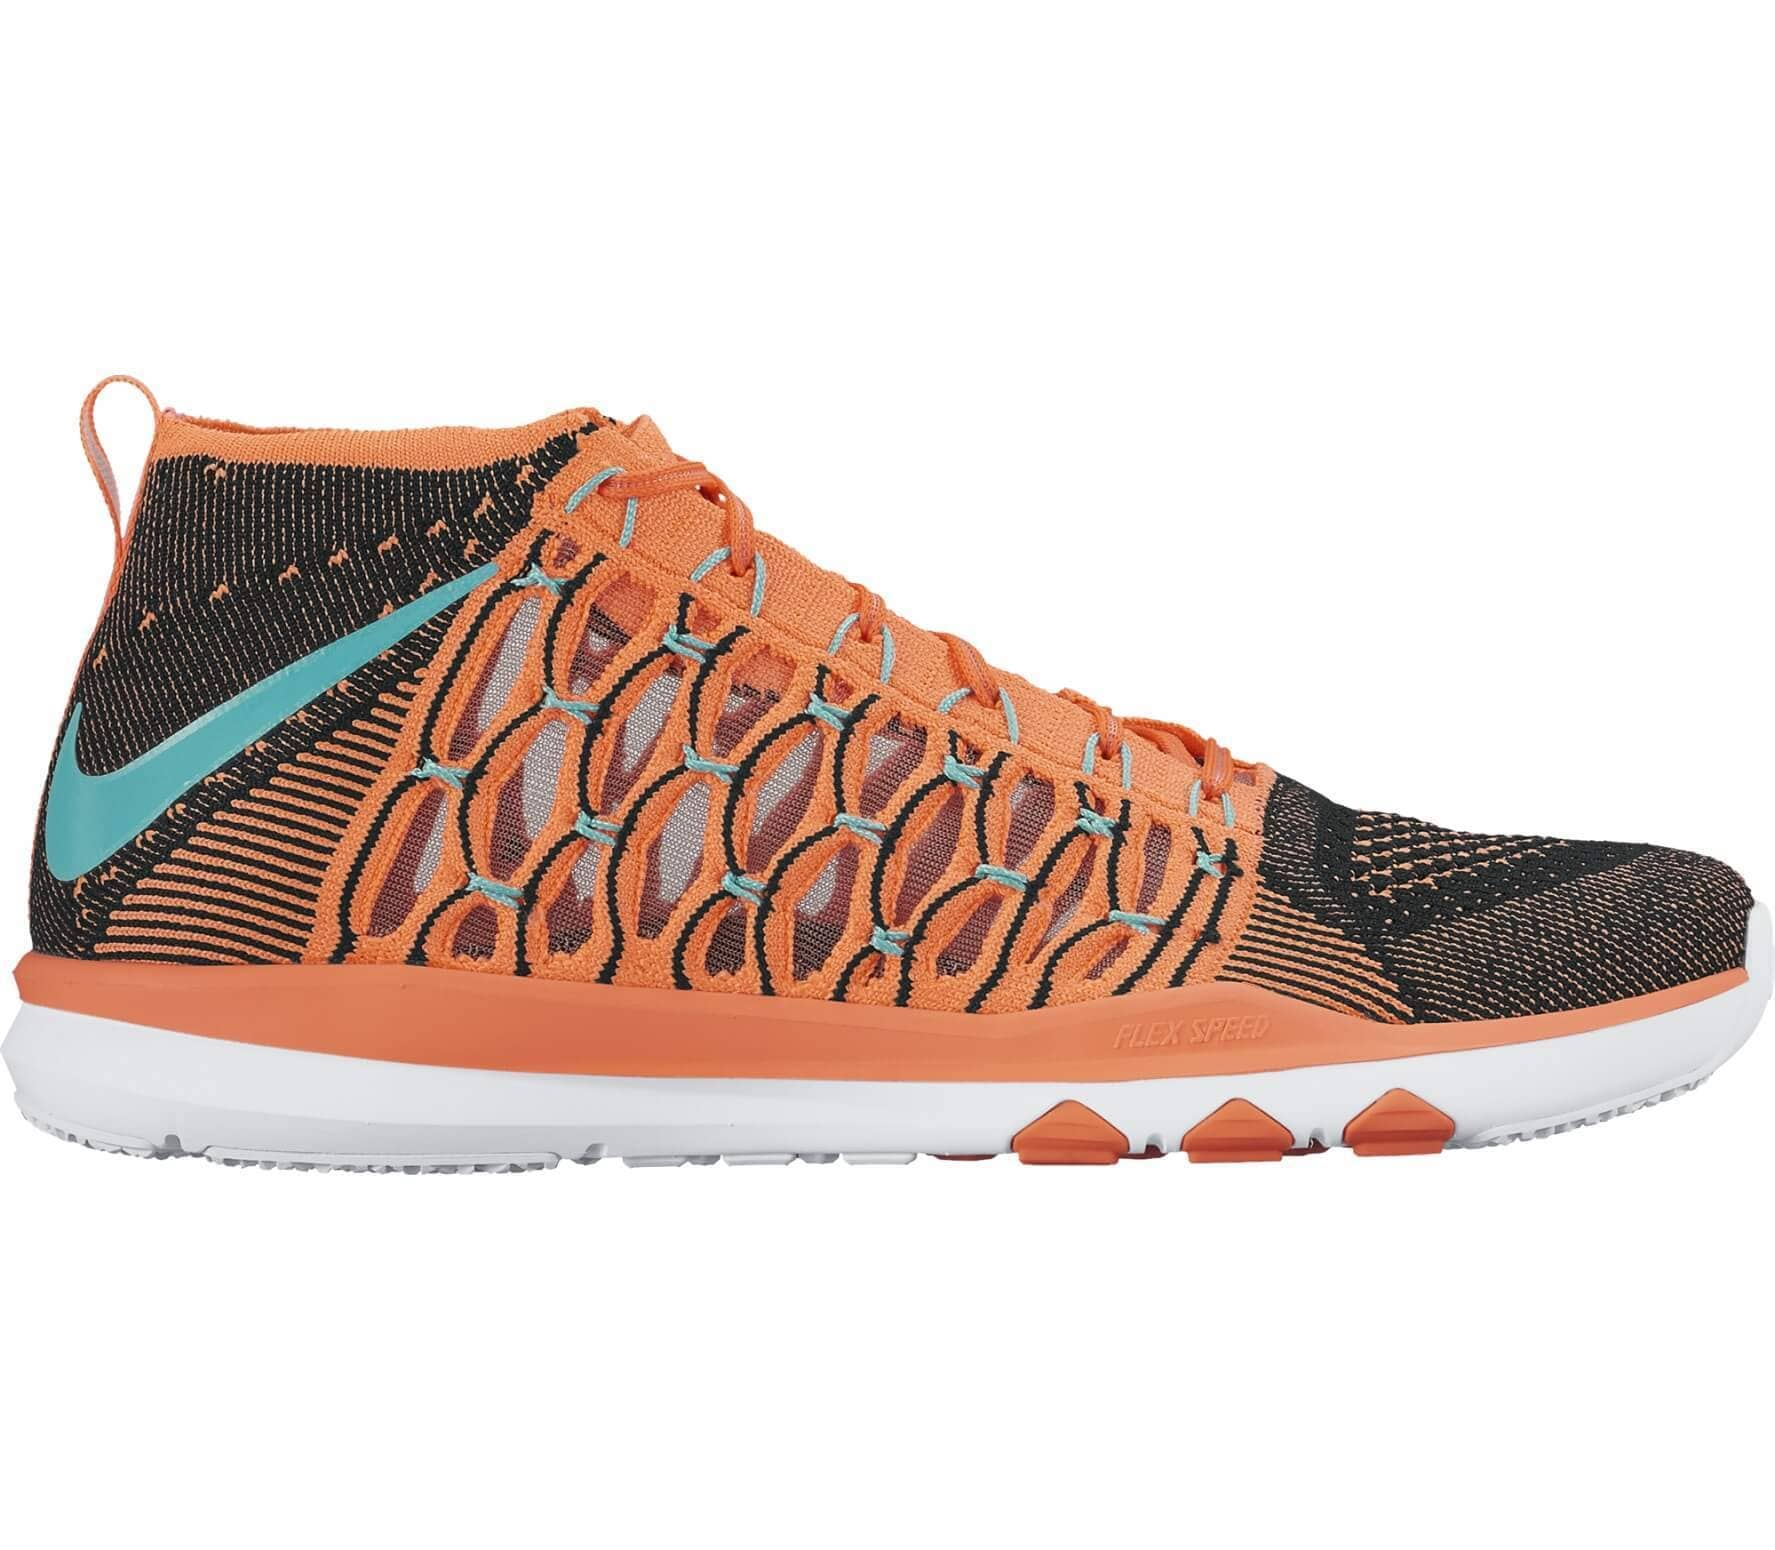 the best attitude 5db0b e6a3b Nike - Train Ultrafast Flyknit men s training shoes (brown black)